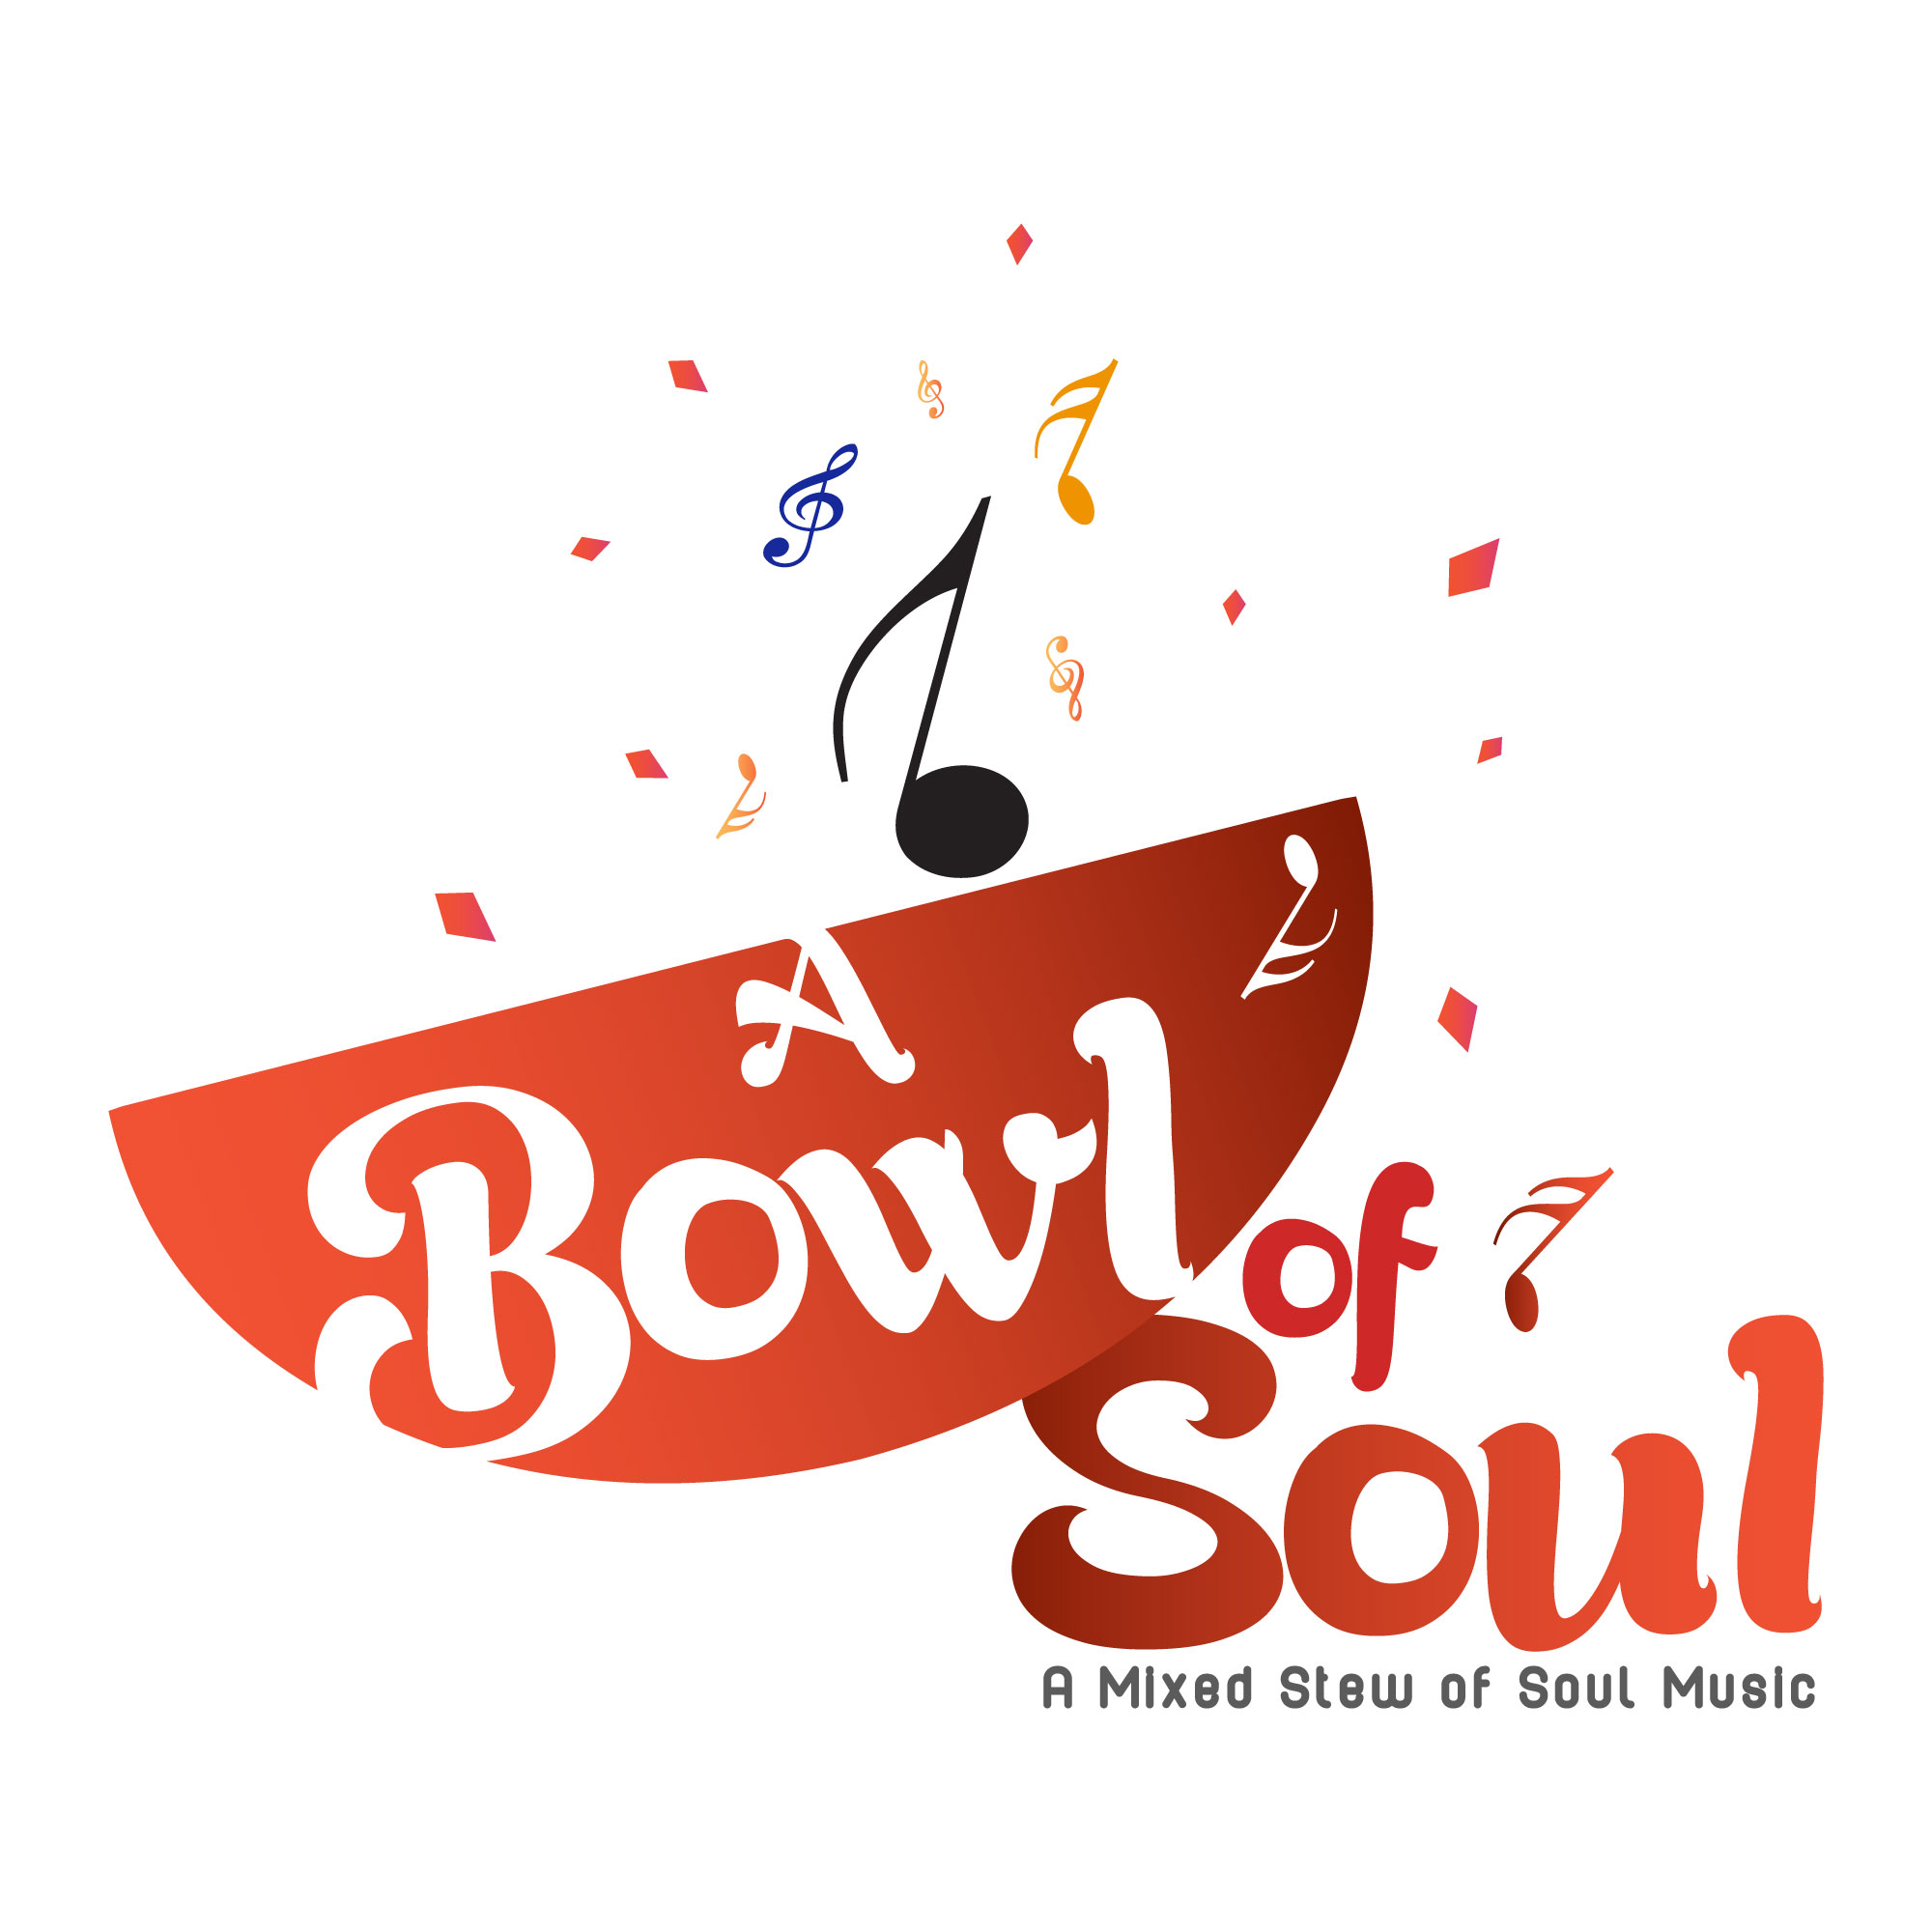 A Bowl of Soul A Mixed Stew of Soul Music Broadcast - 01-29-2021 - A Bowl of Soul Celebrates New R&B Music for 2021 show art